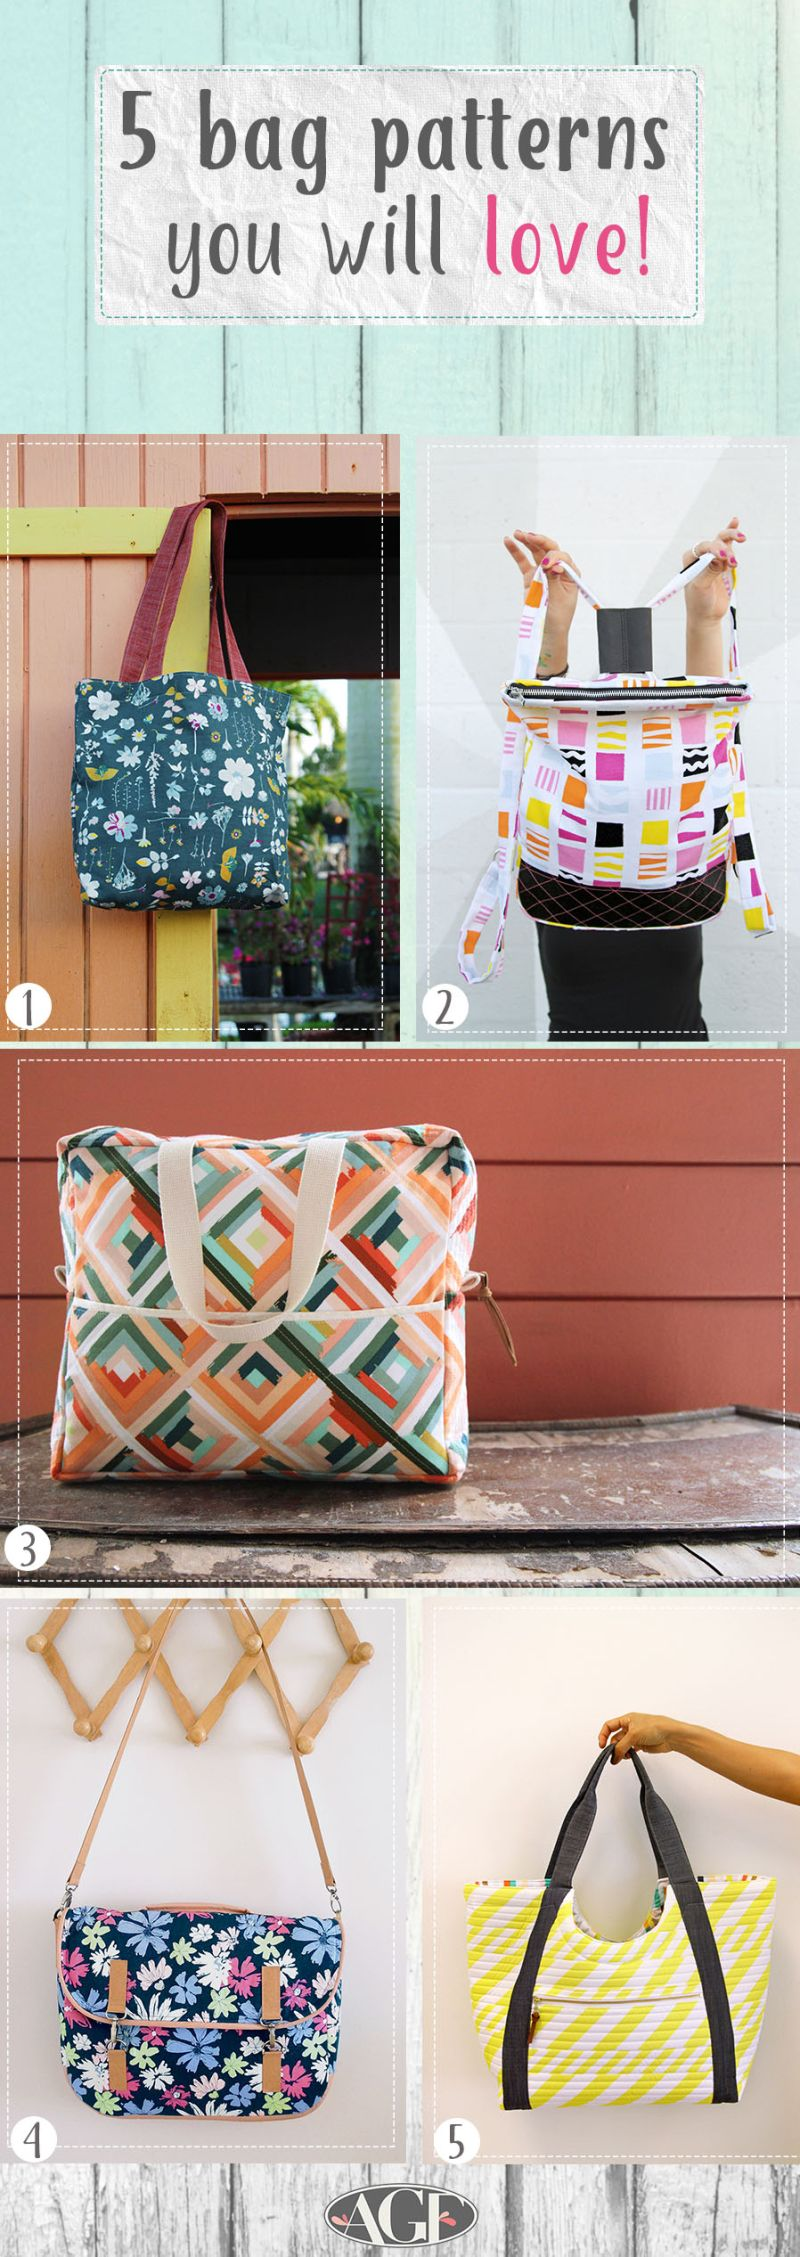 5 bag patterns you will love made with Canvas fabric! (Art Gallery ...